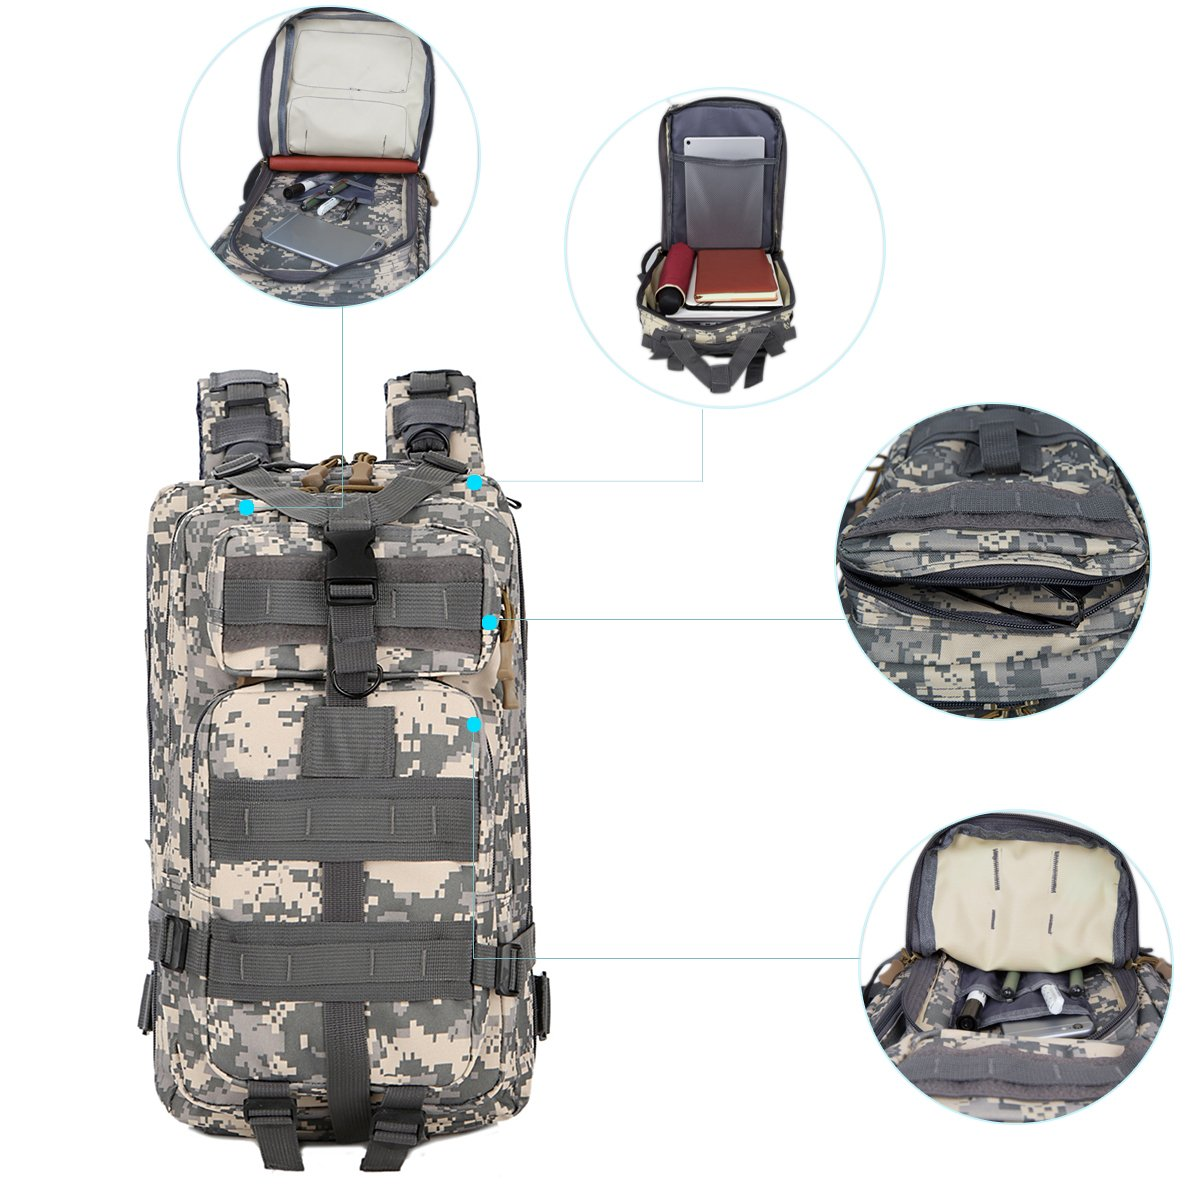 30L Military Tactical Backpack Waterproof Outdoor Bag School Book Bag for Hiking Camping Climbing Trekking Travel Daypack for Kids Teenagers Size 8.6\'\'x 5.9\'\'x 16.9\'\' (Camouflage1)